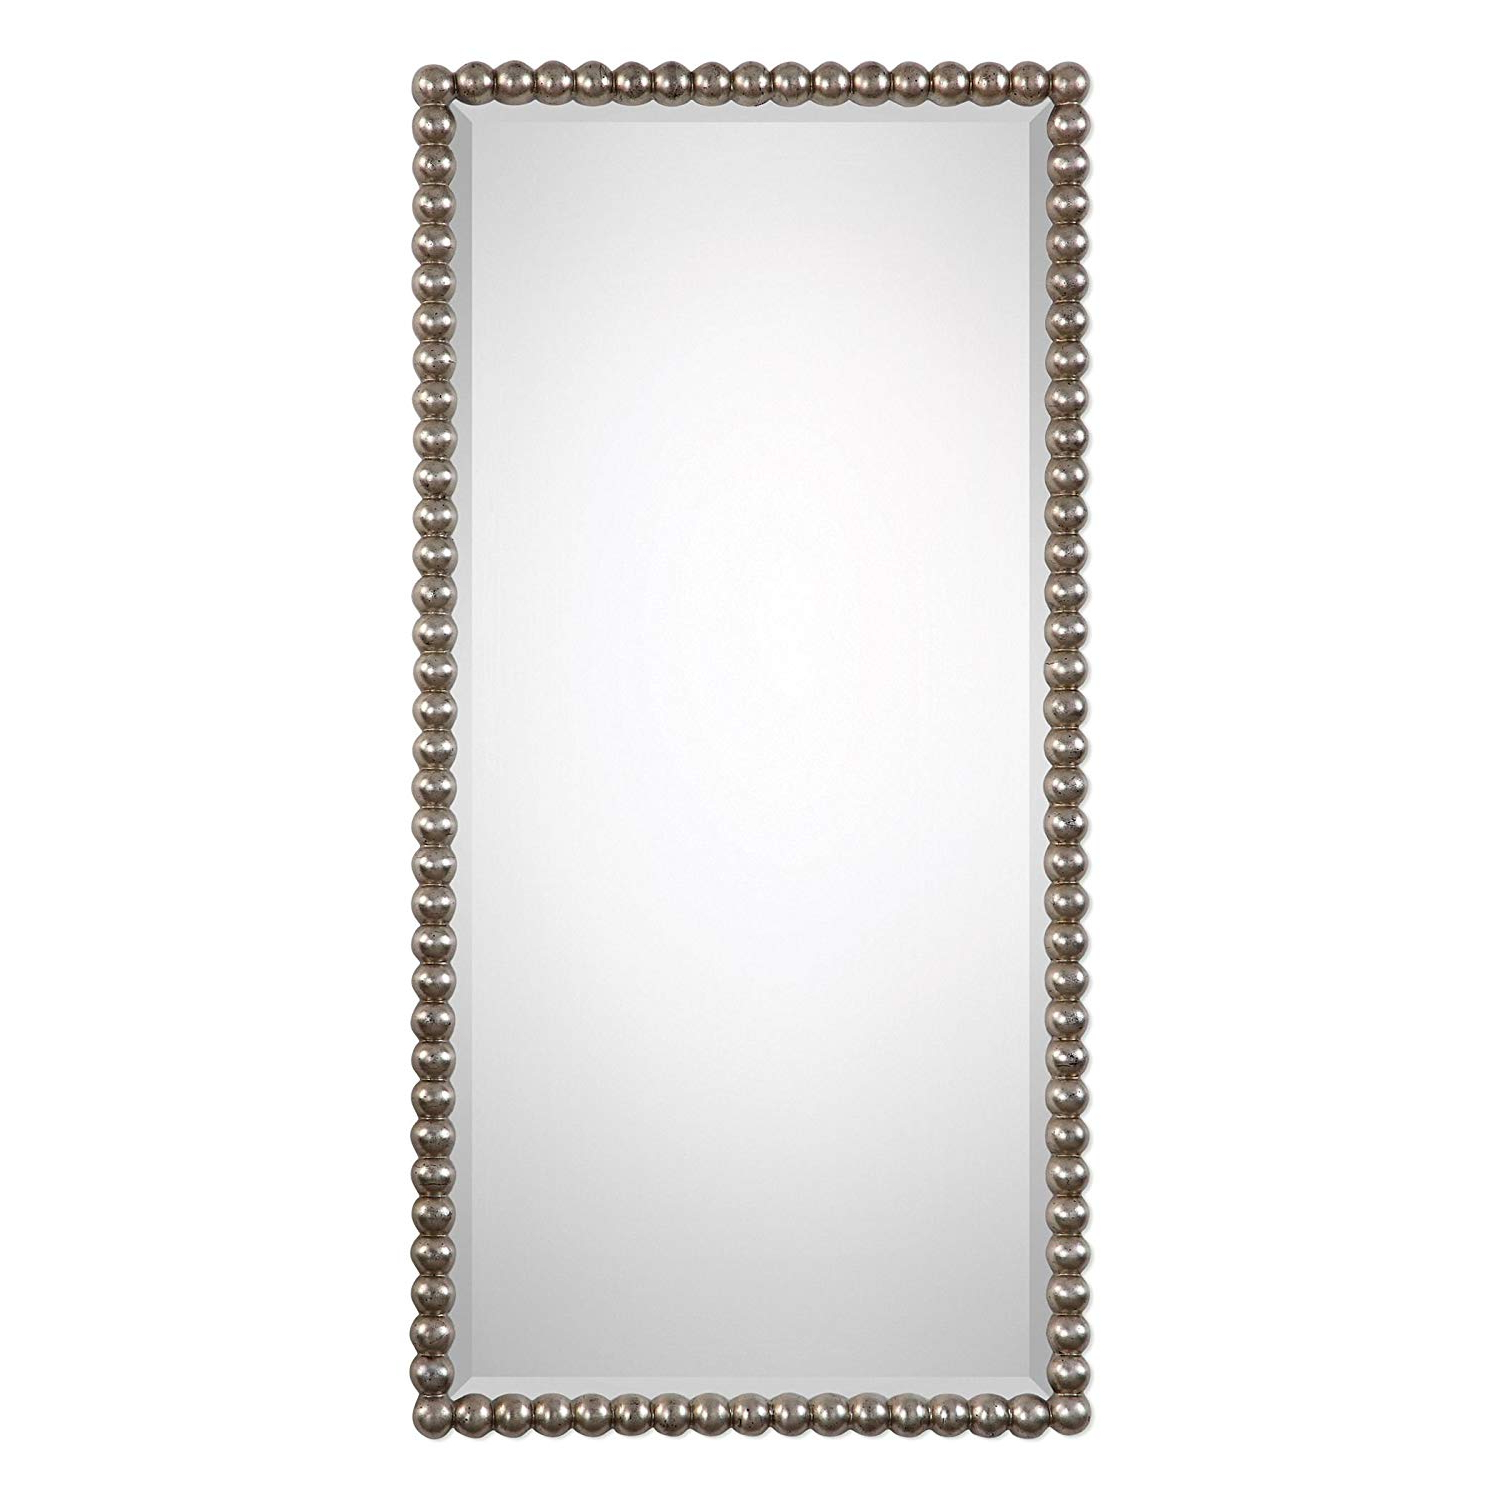 Traditional Frameless Diamond Wall Mirrors Within Most Current Amazon: My Swanky Home Beaded Silver Champagne Wall Mirror (View 15 of 20)